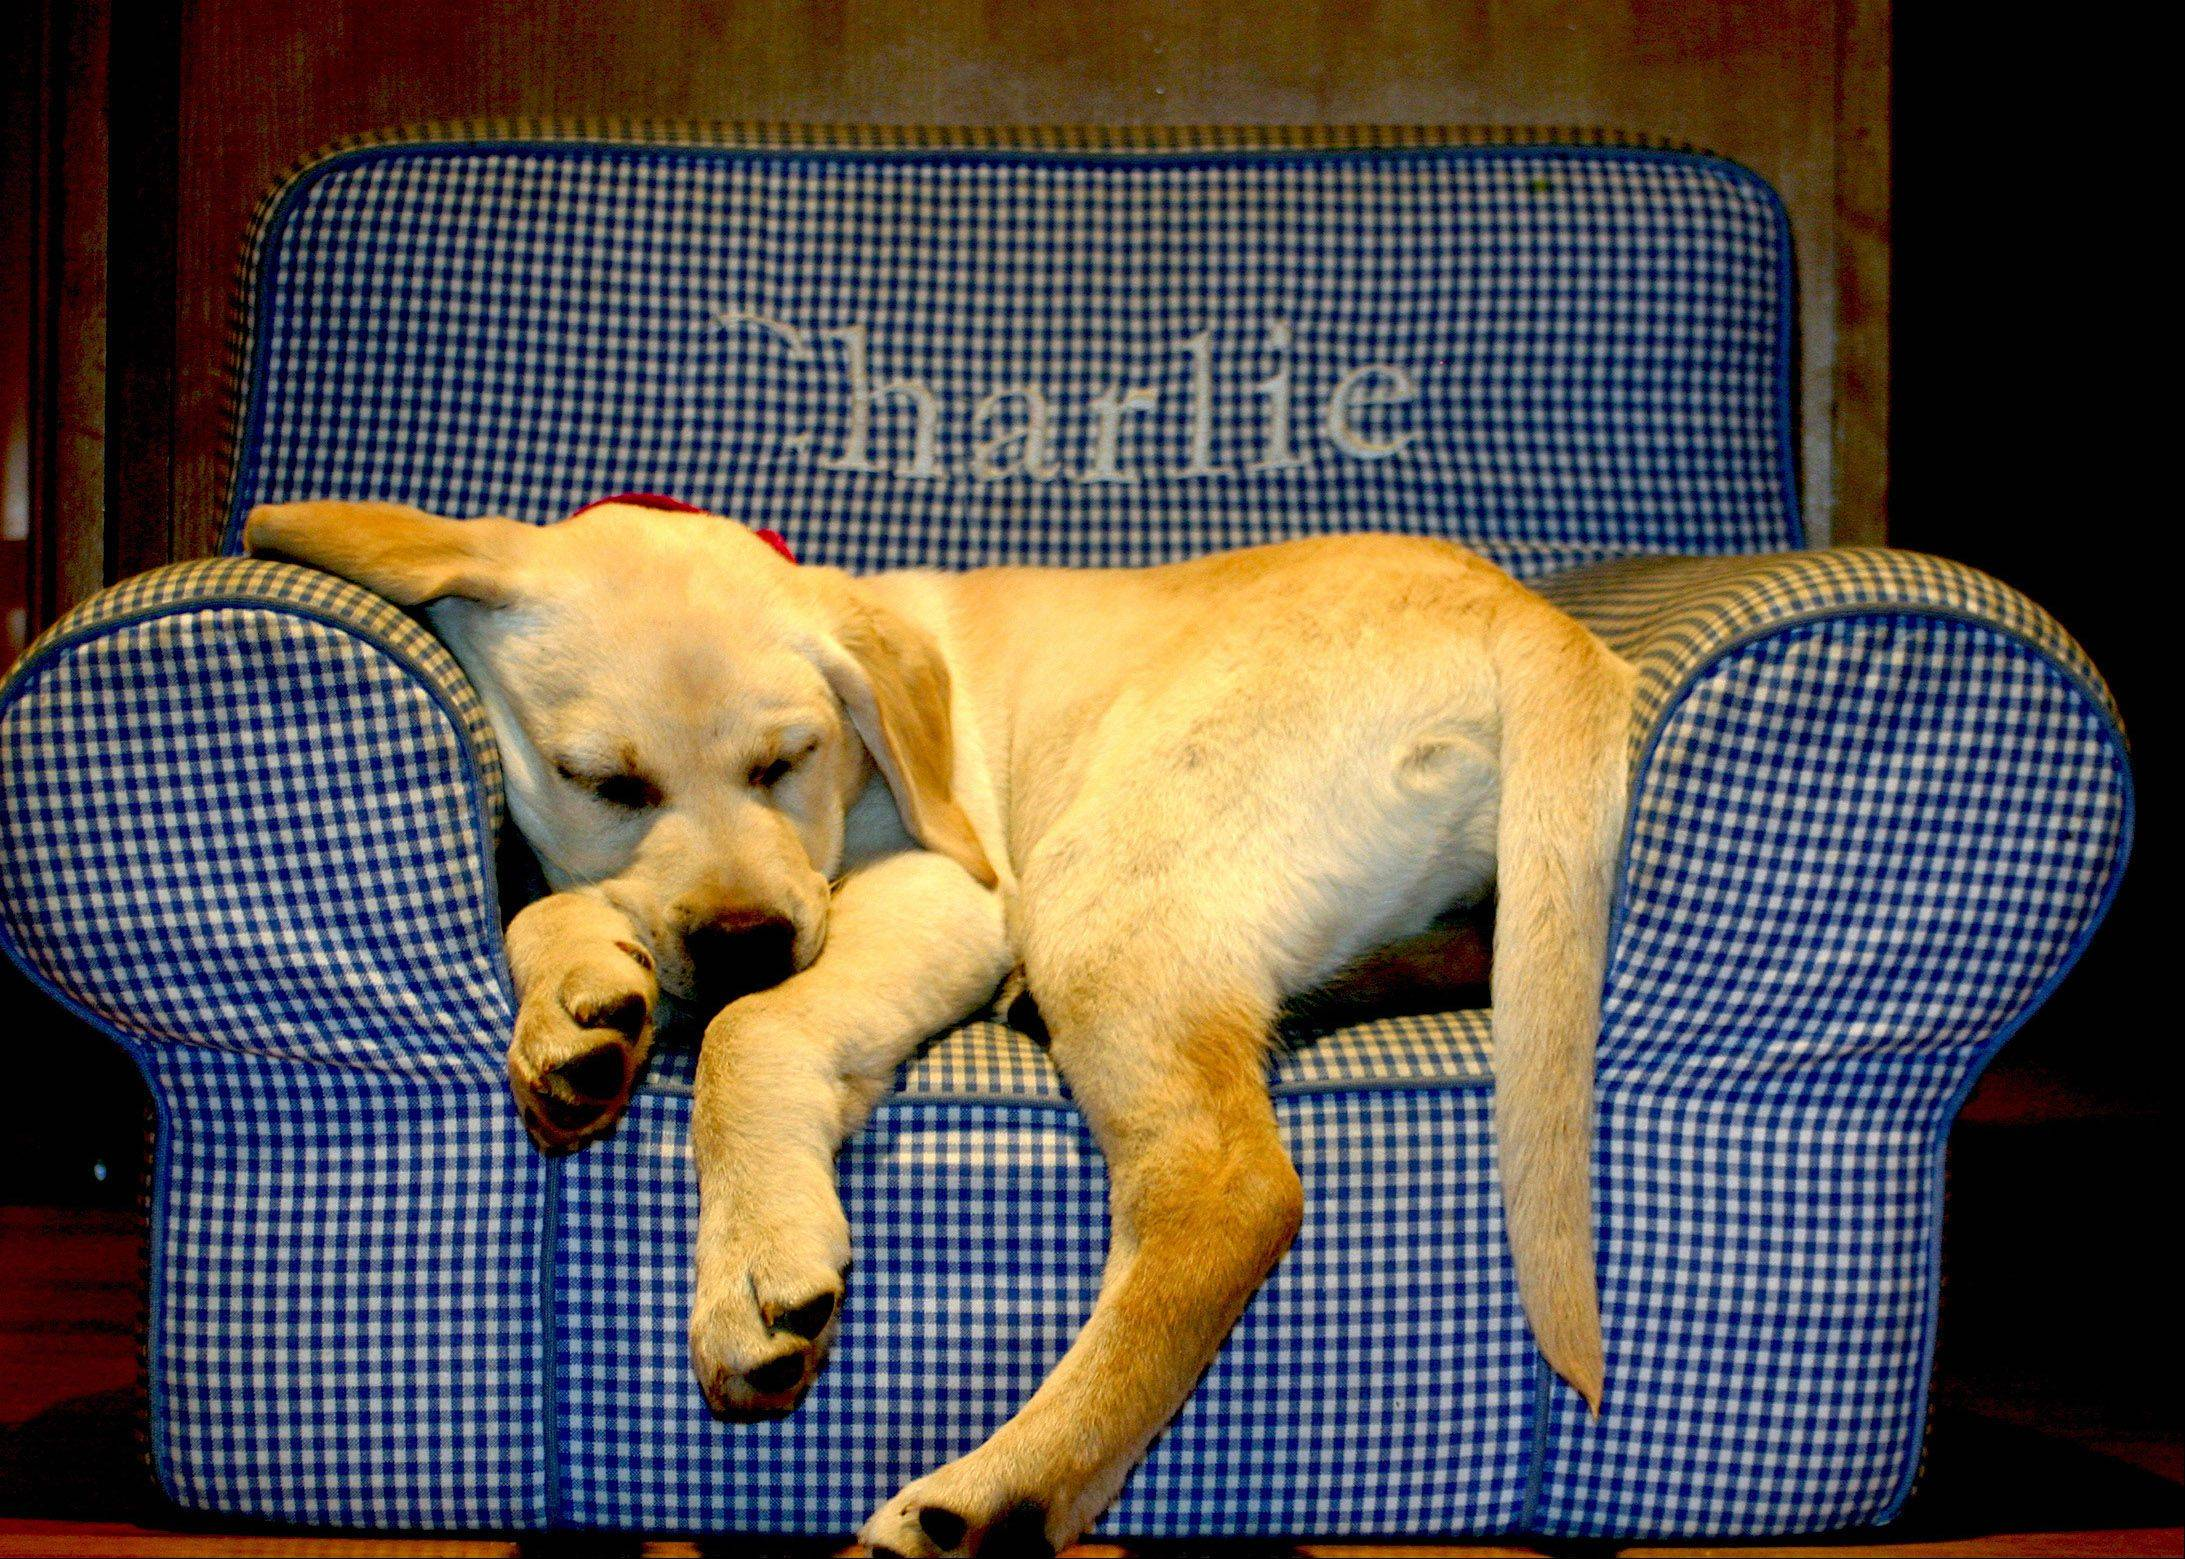 A Labrador puppy is exhausted after a hard day playing and found this chair very comfy.